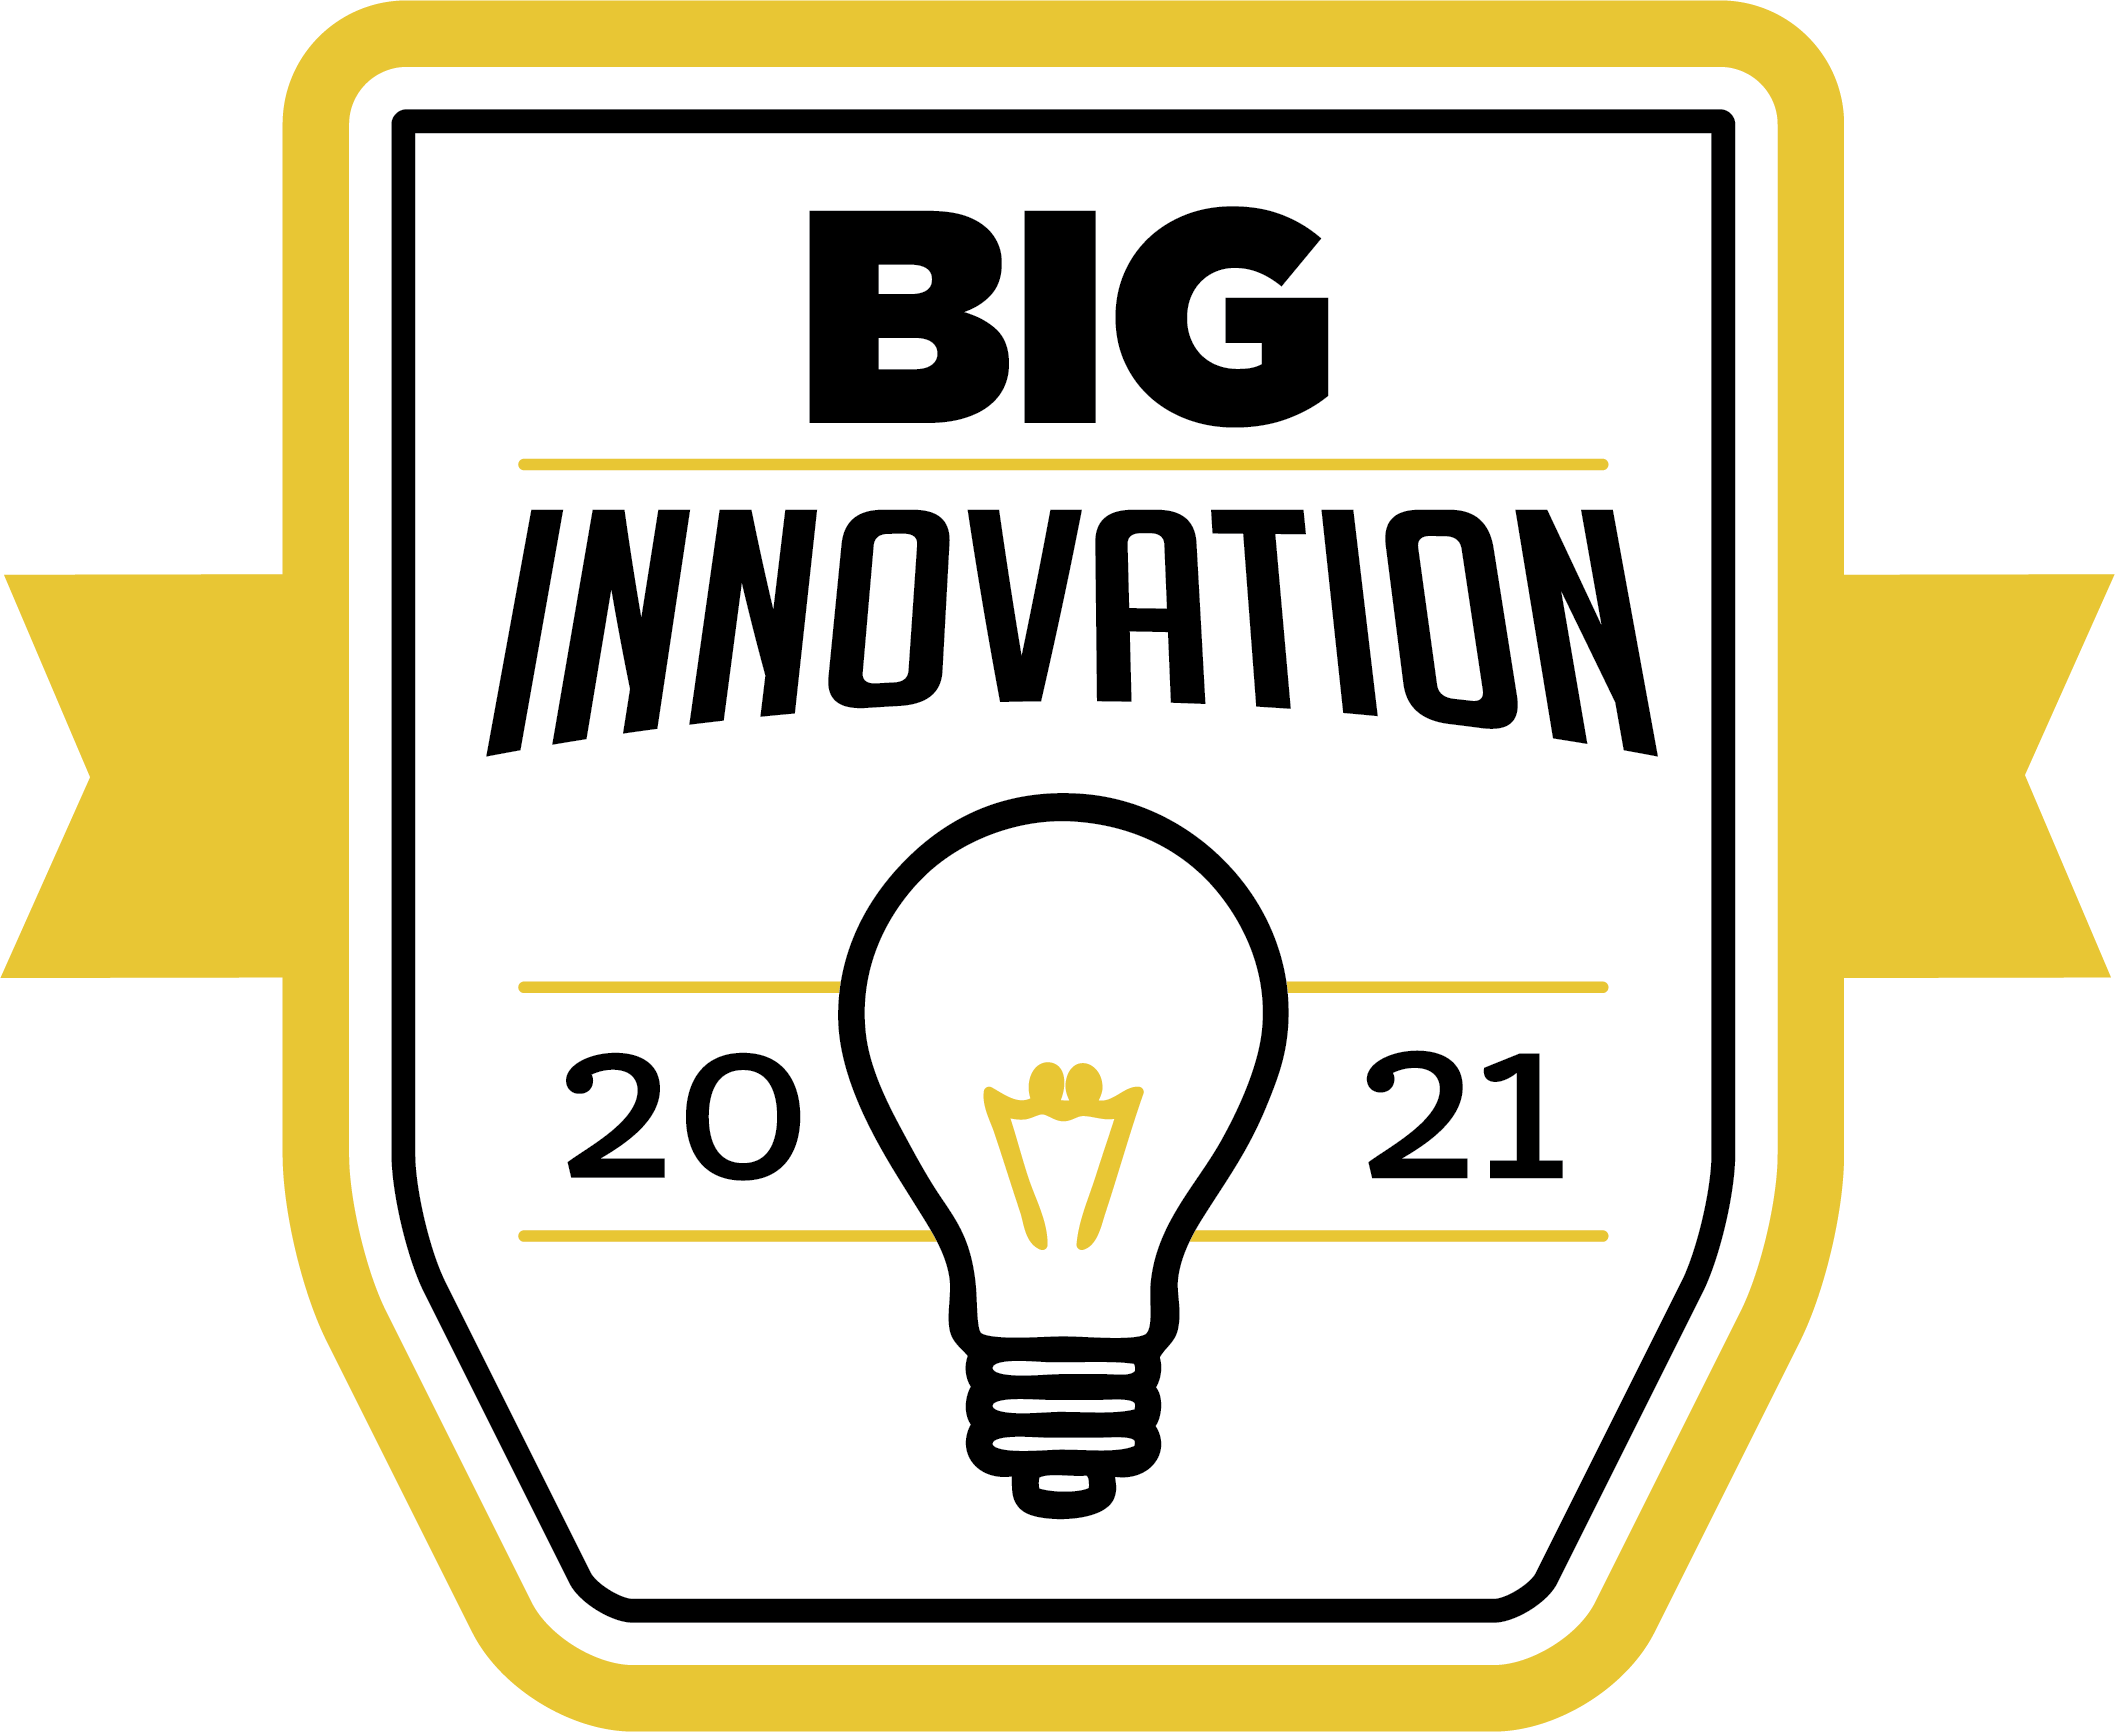 Big-INNOVATION-2021